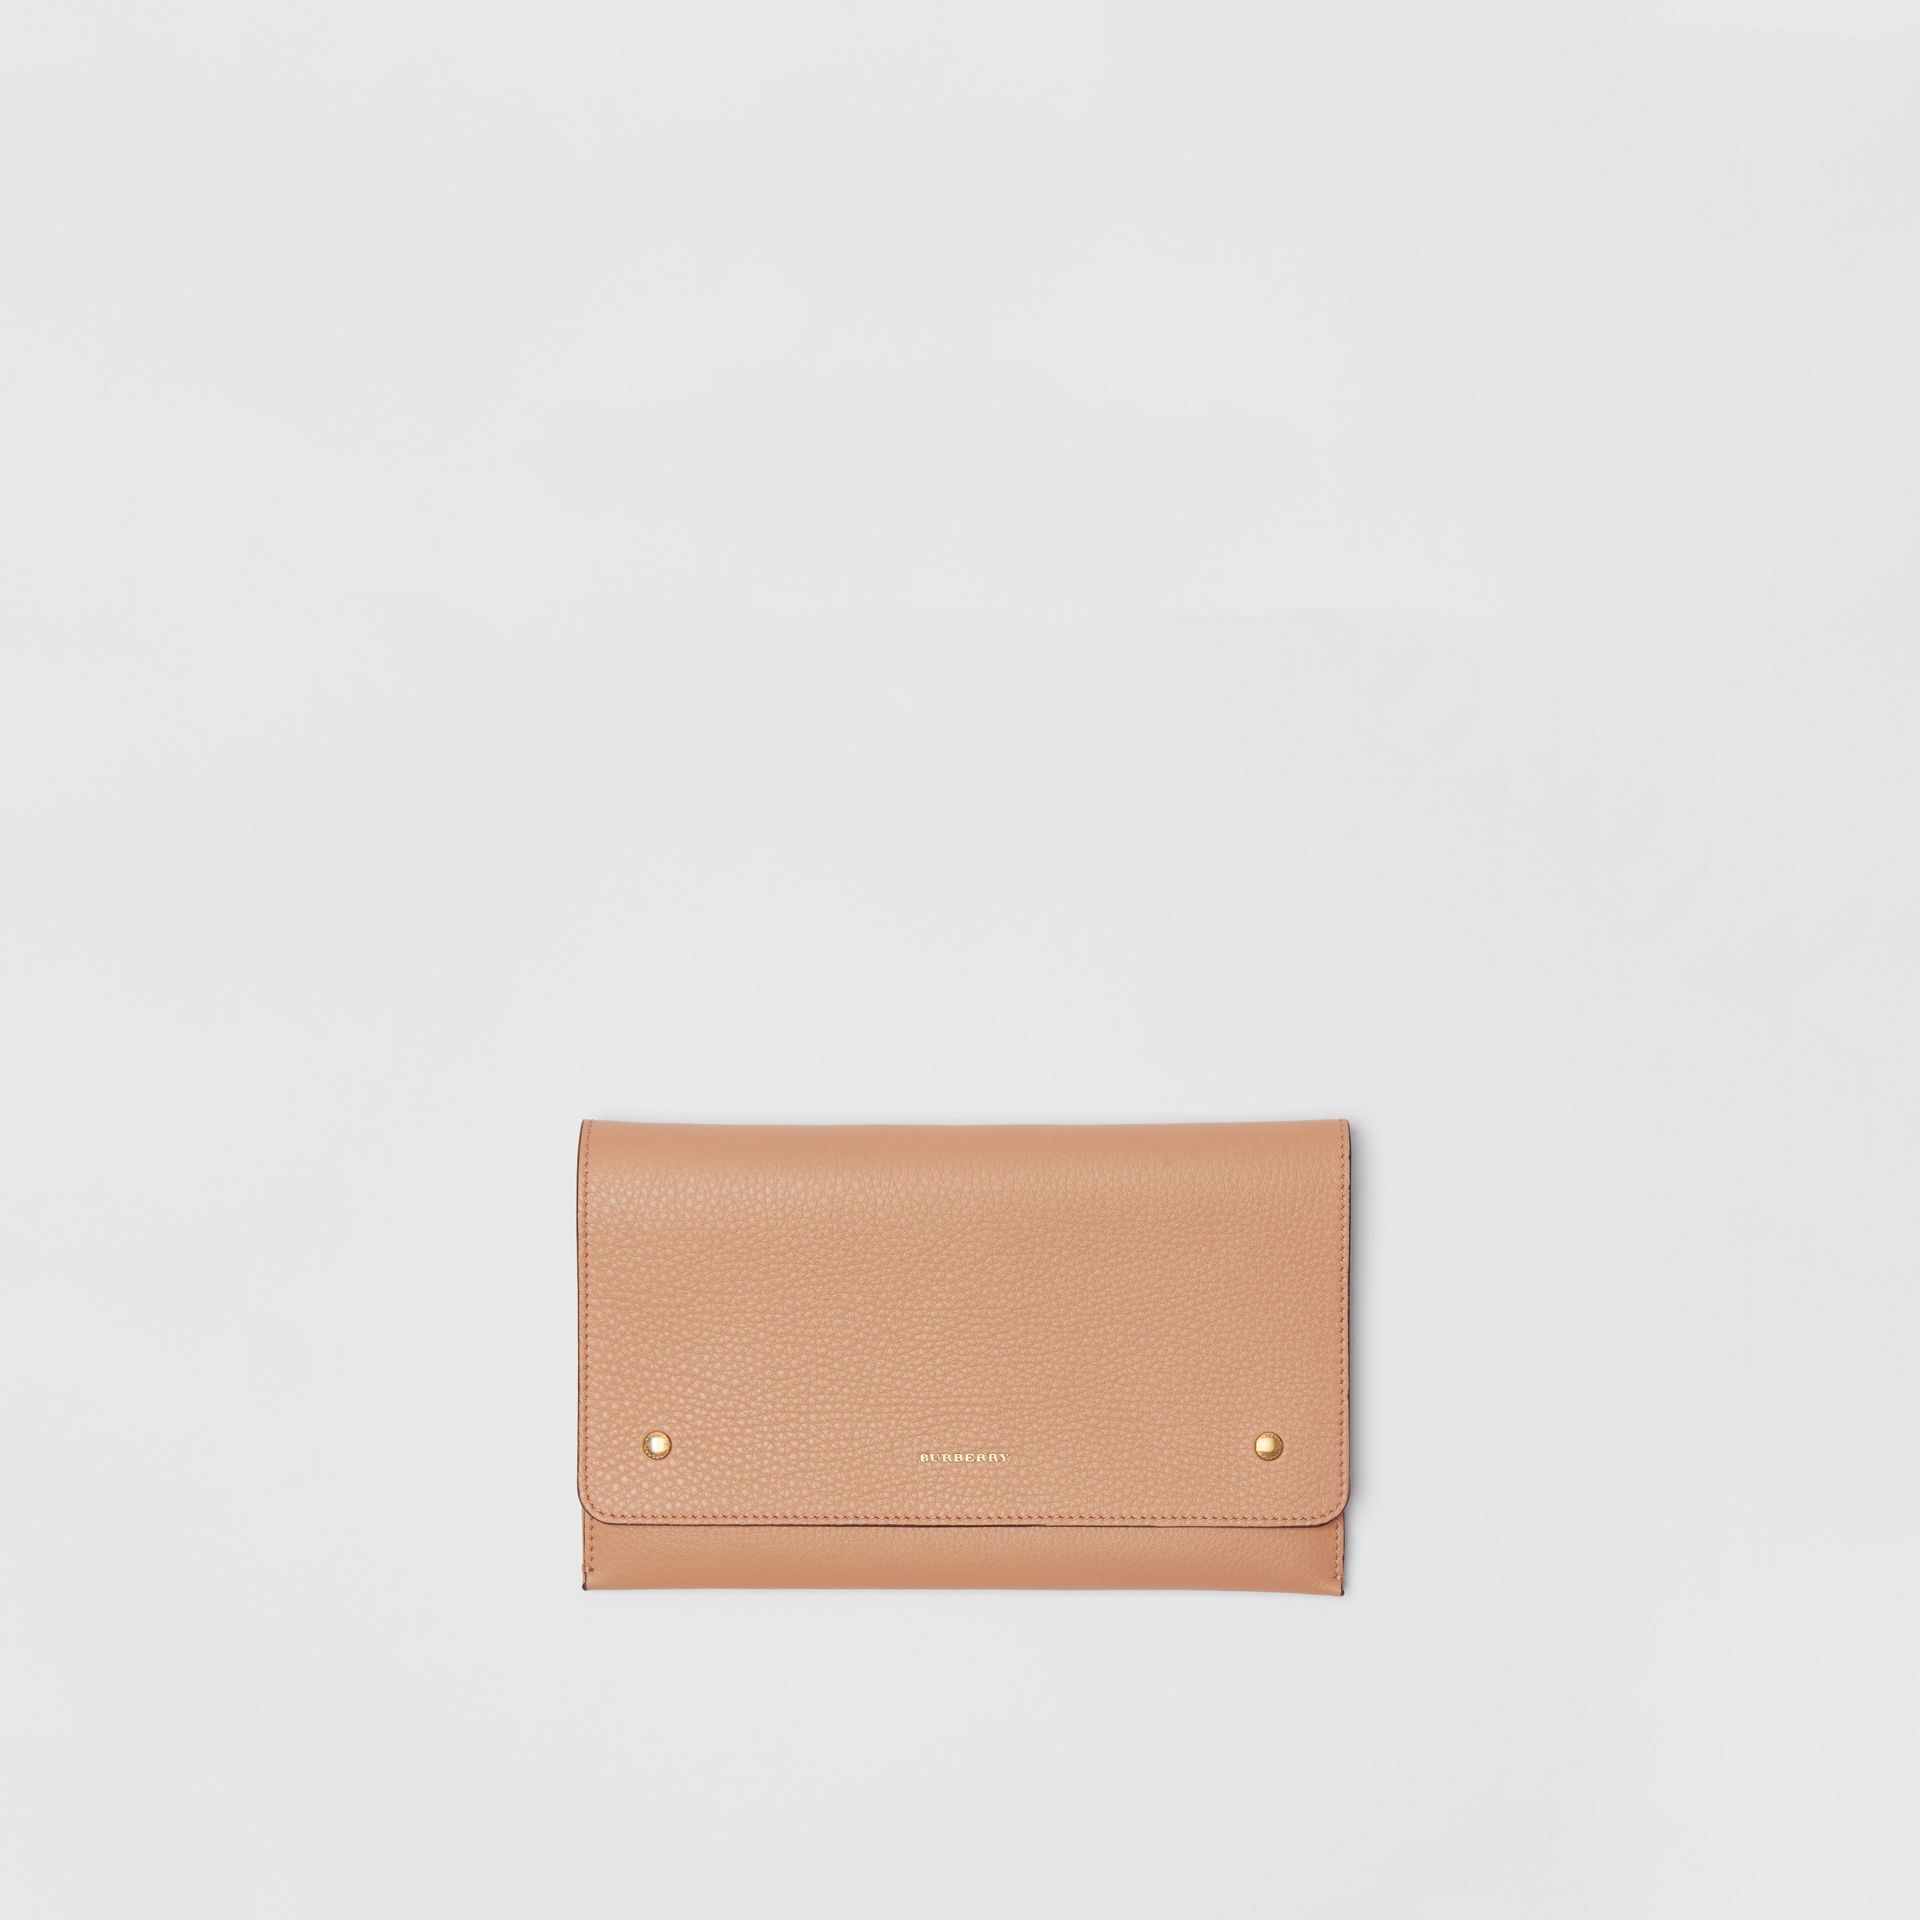 Two-tone Leather Wristlet Clutch in Light Camel - Women | Burberry - gallery image 0